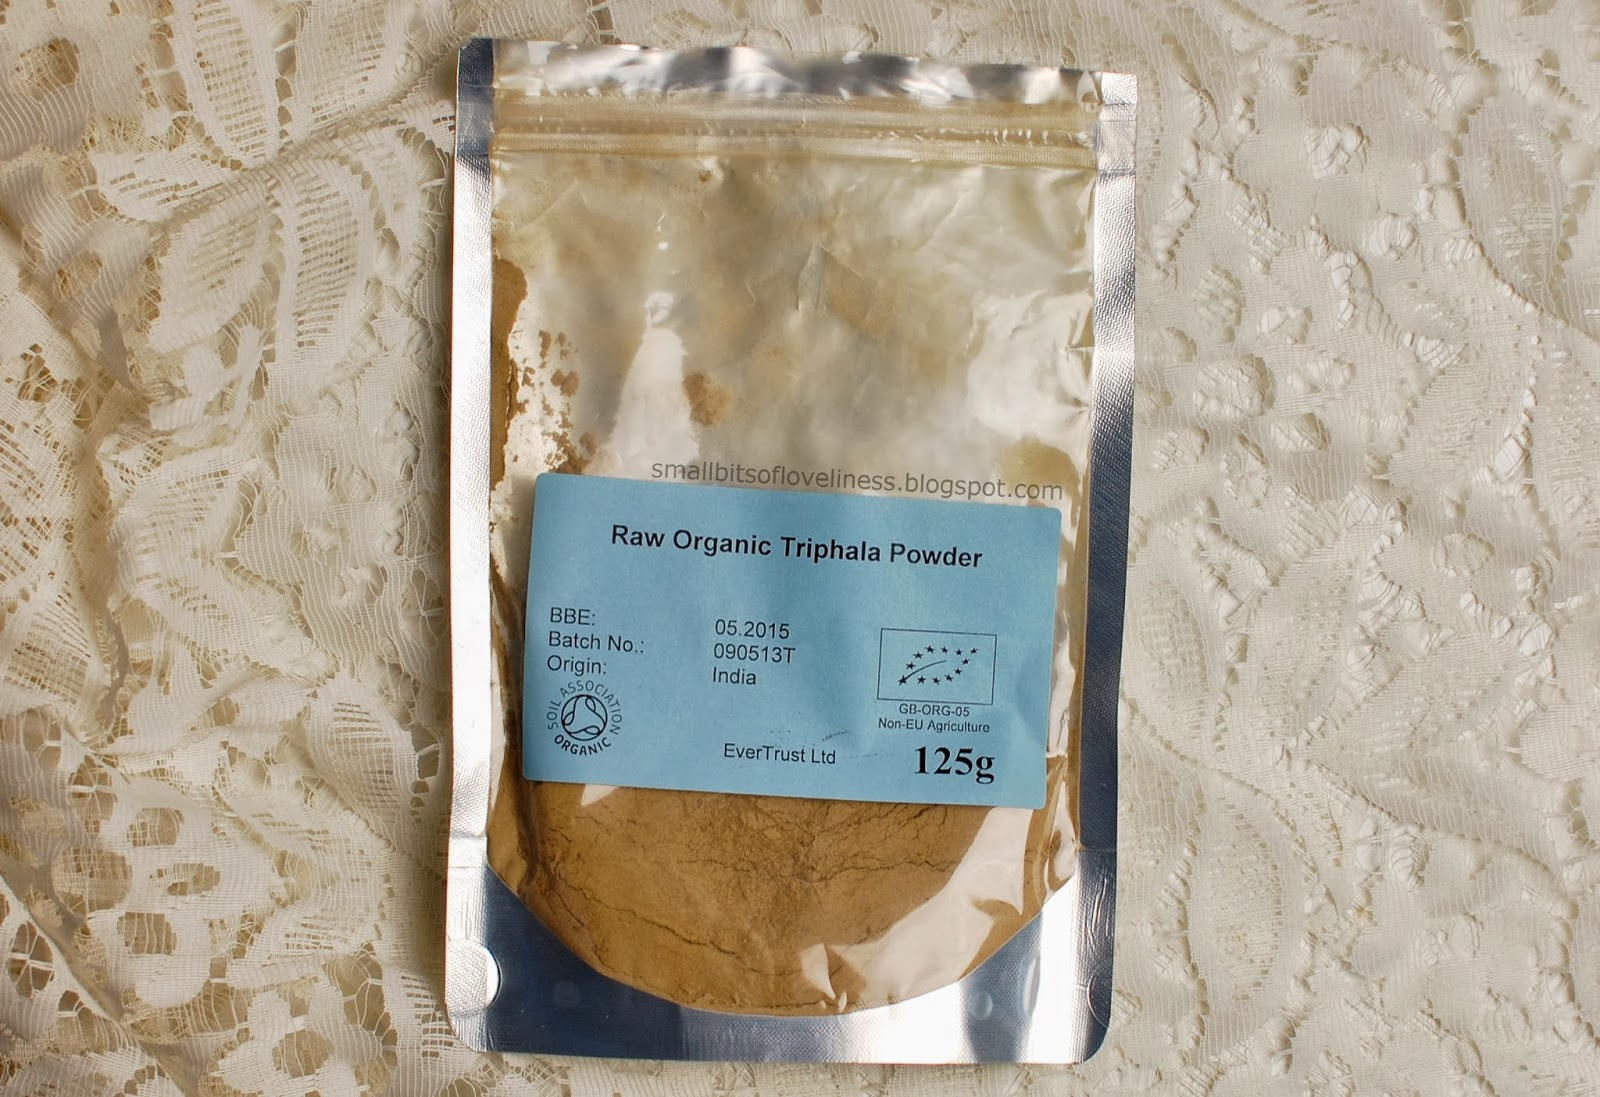 Raw Organic Triphala Powder